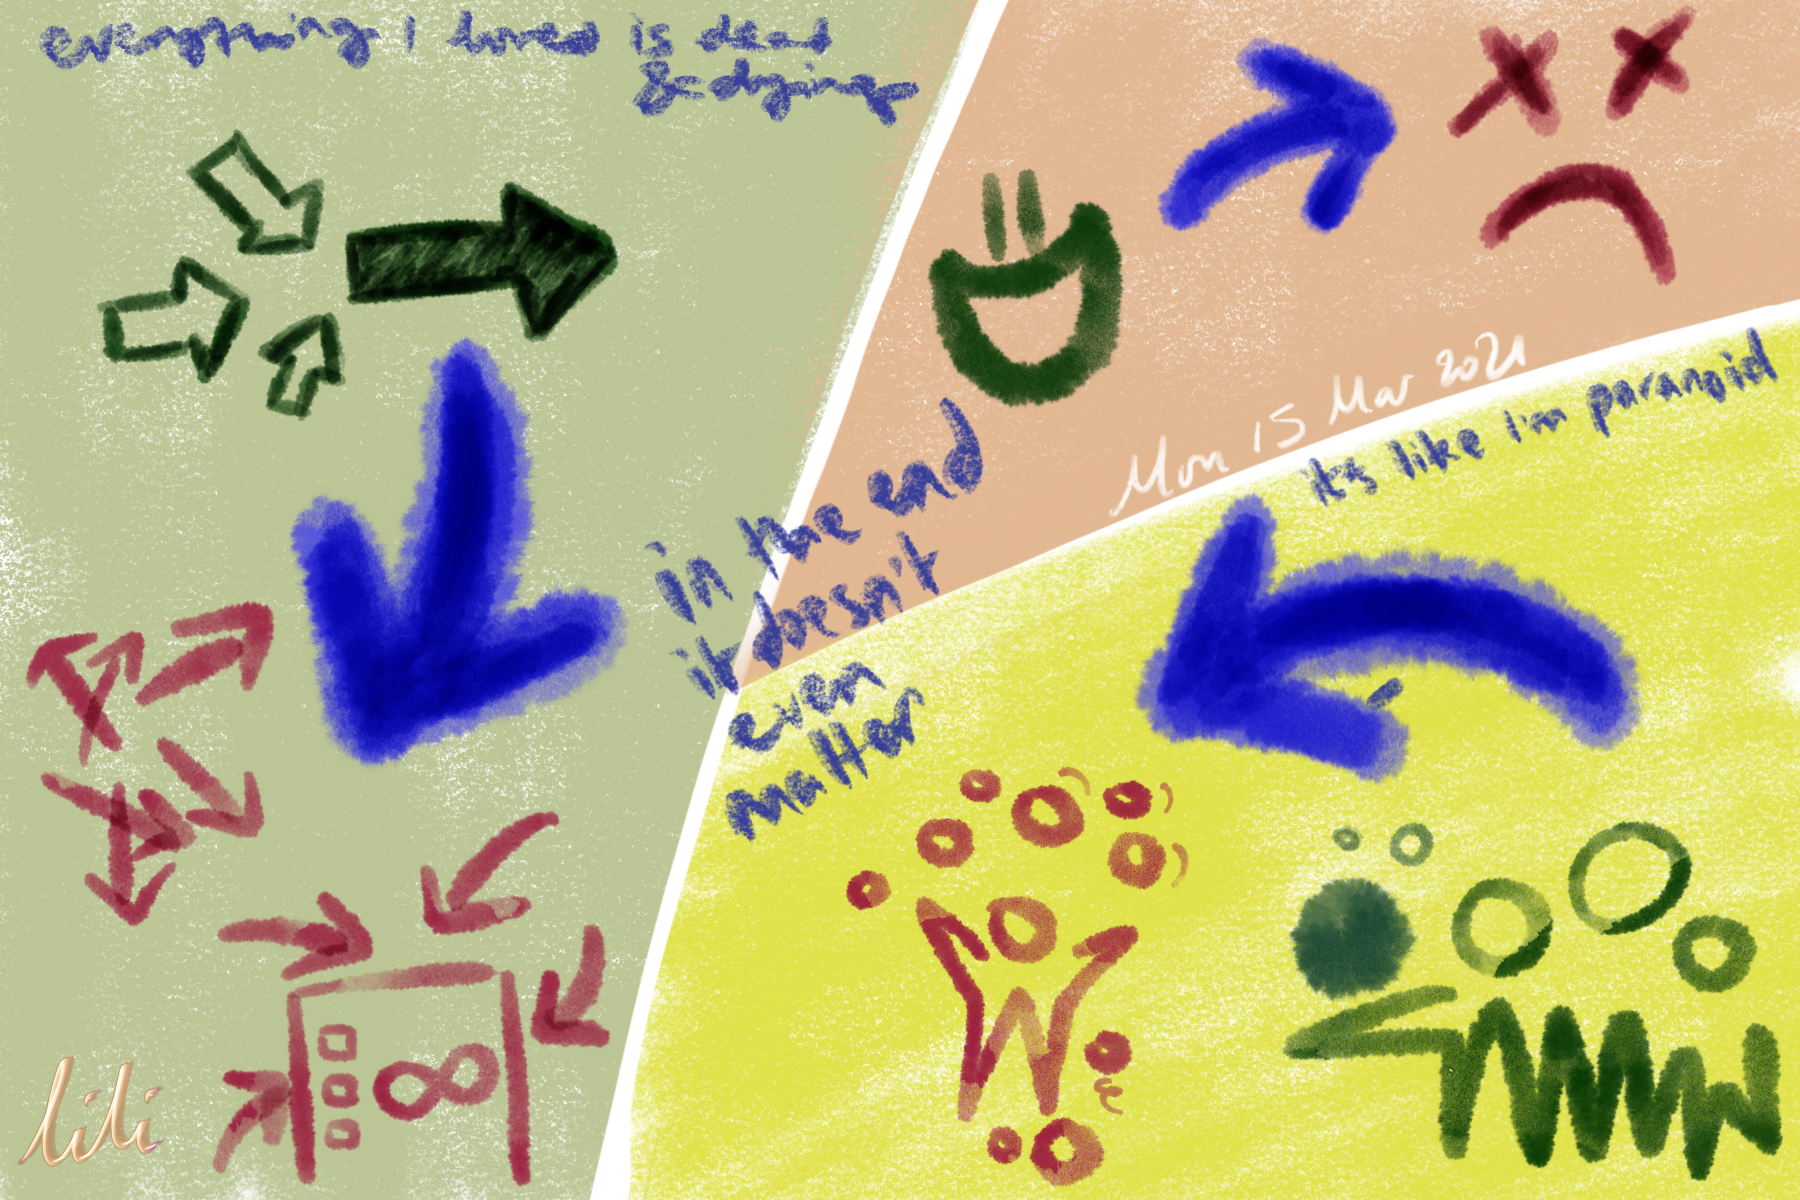 Blue arrows showing moving from green positive states to red negative states. Small arrows going into one clear direction transforms into many arrows going in different directions, smiley face transforms into exhausted face, and a few people balancing a few balls of different sizes transforms into one person with too many balls falling all around. Mon, 15 Mar 2021.